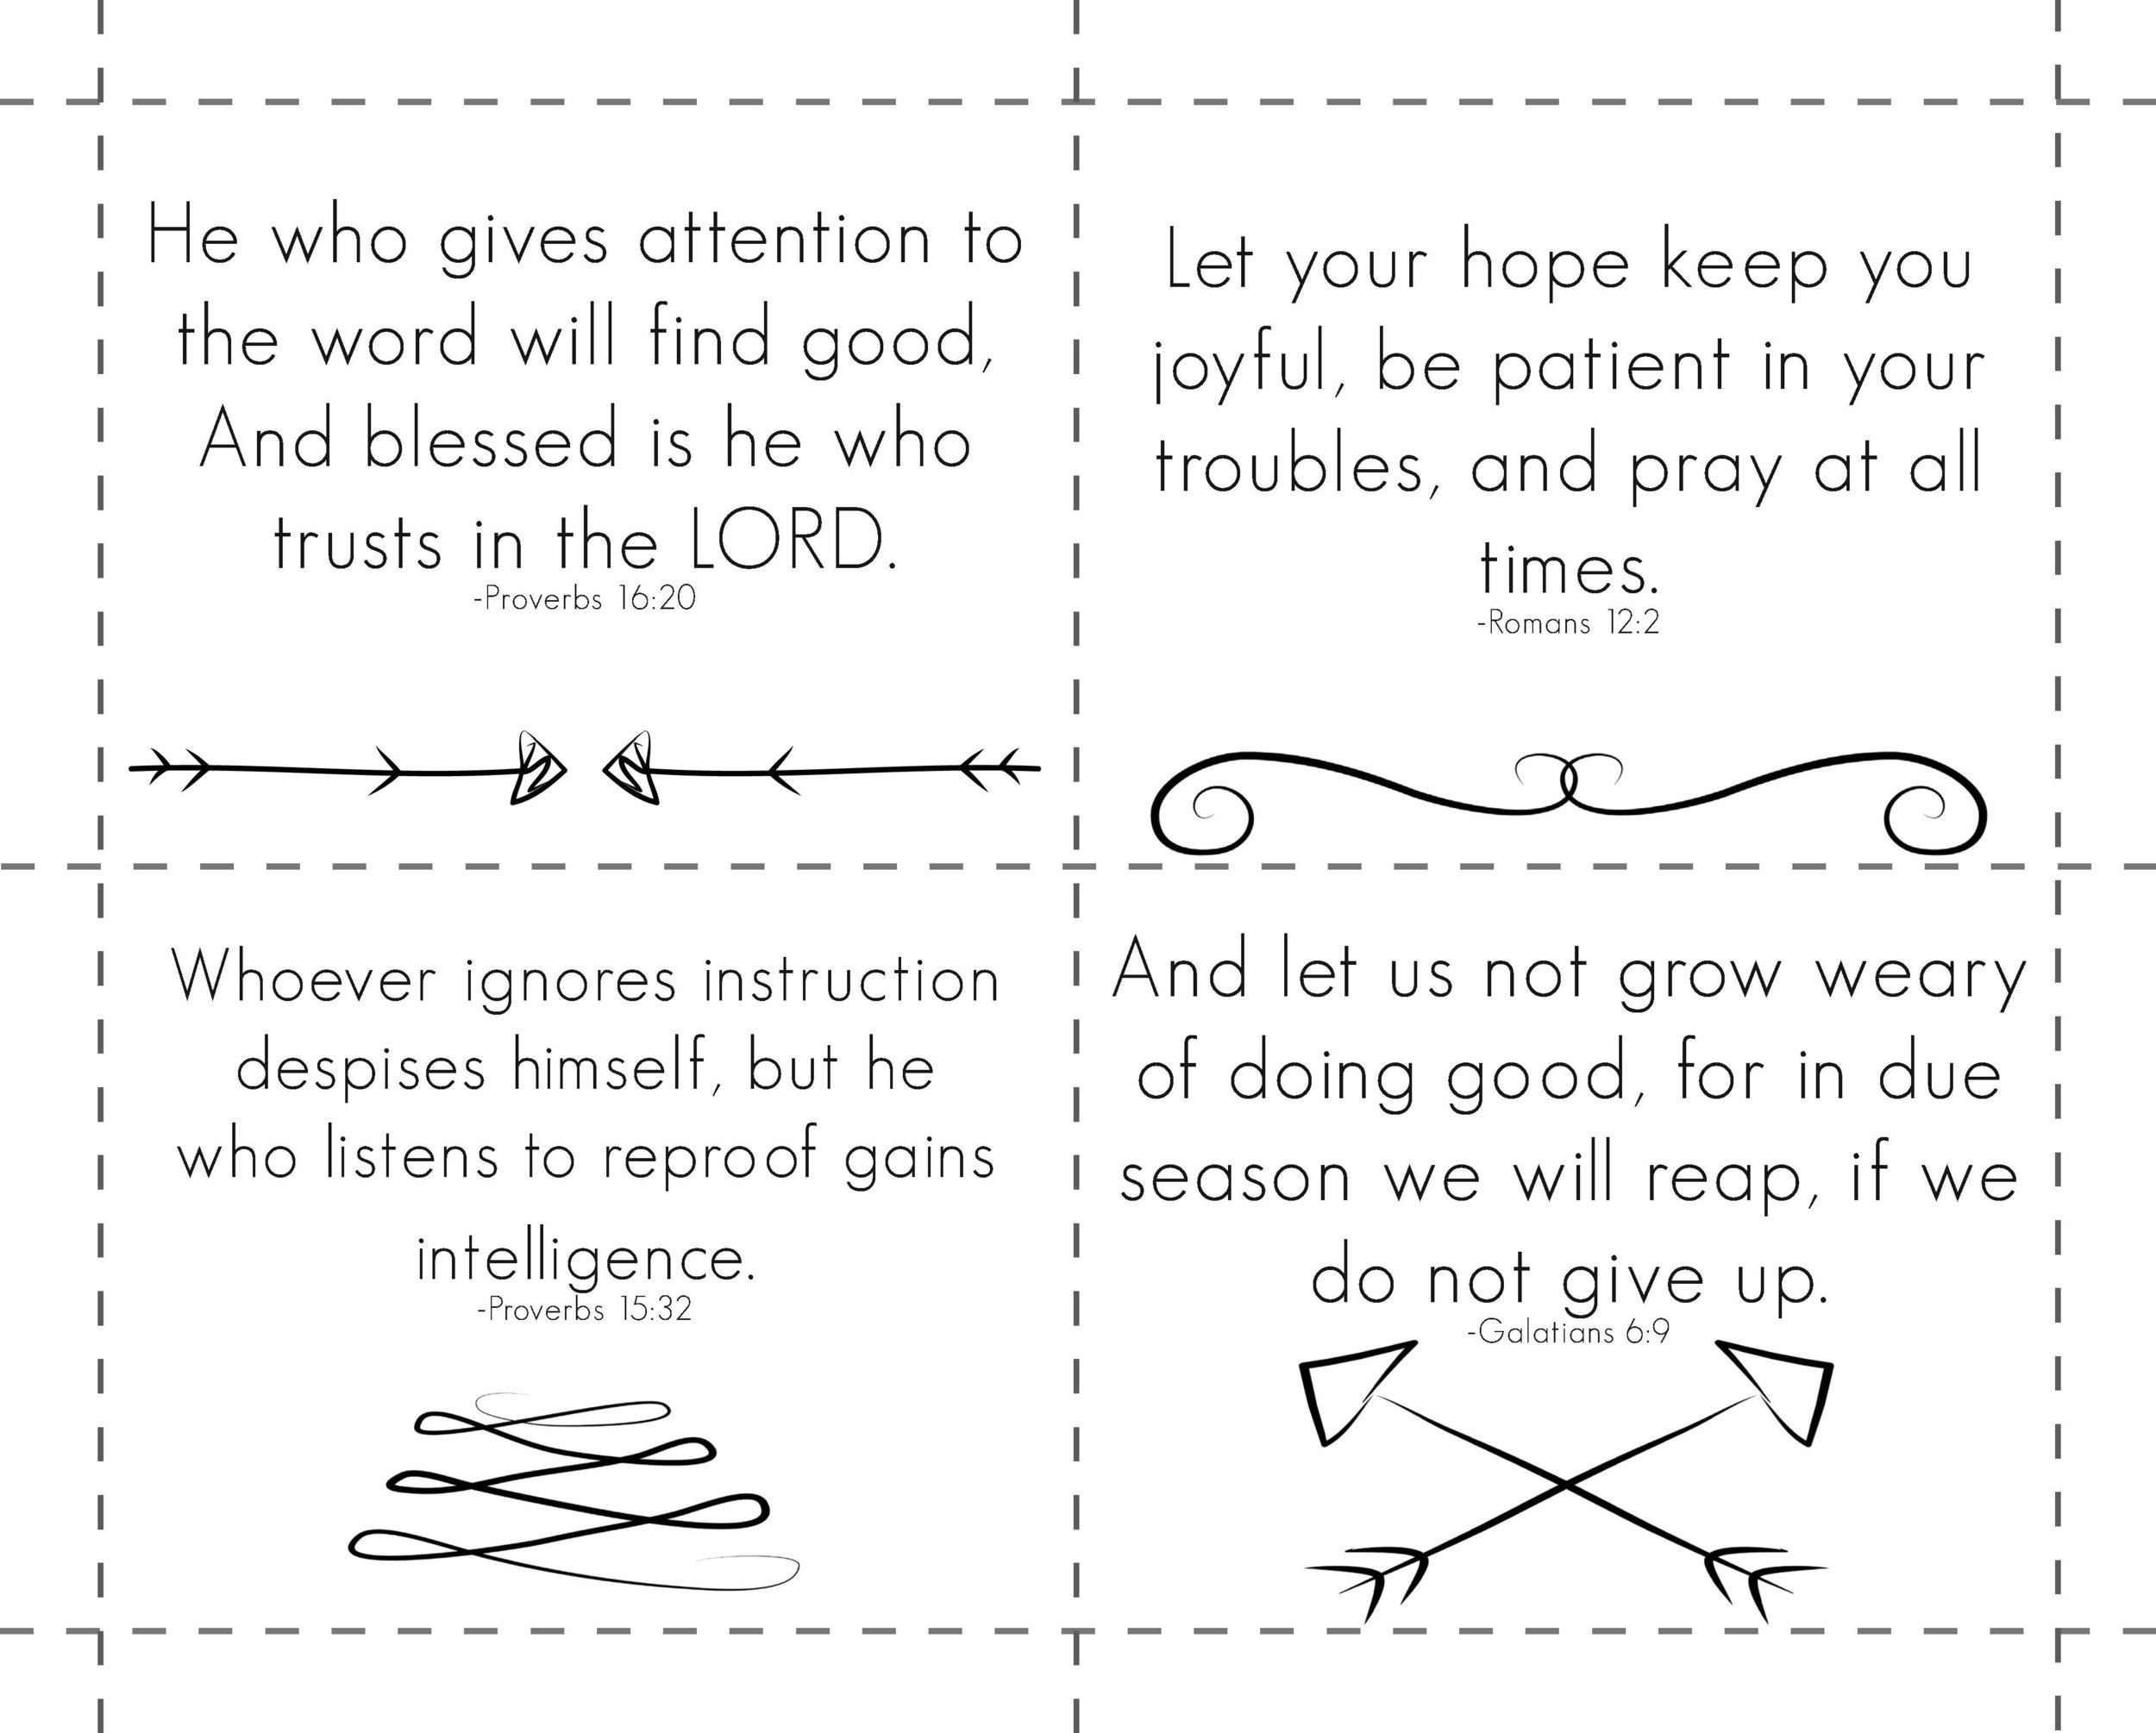 Distraction_Scripture_Memory_Page_06.jpg